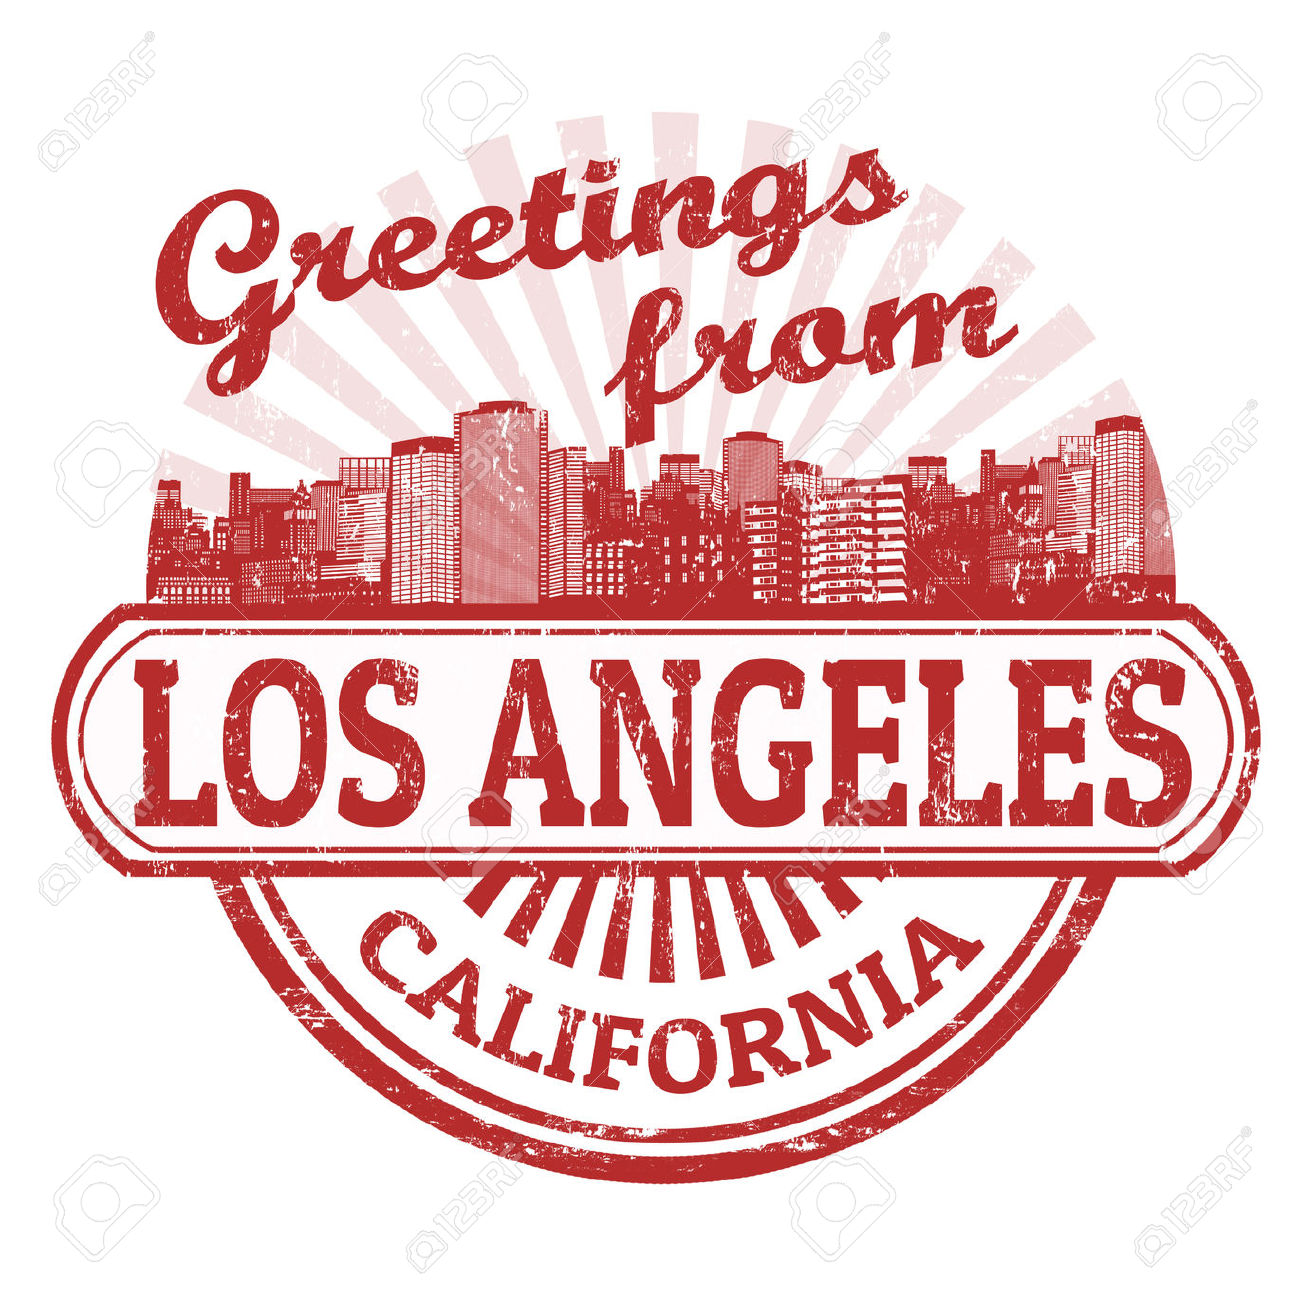 clipart los angeles - photo #7